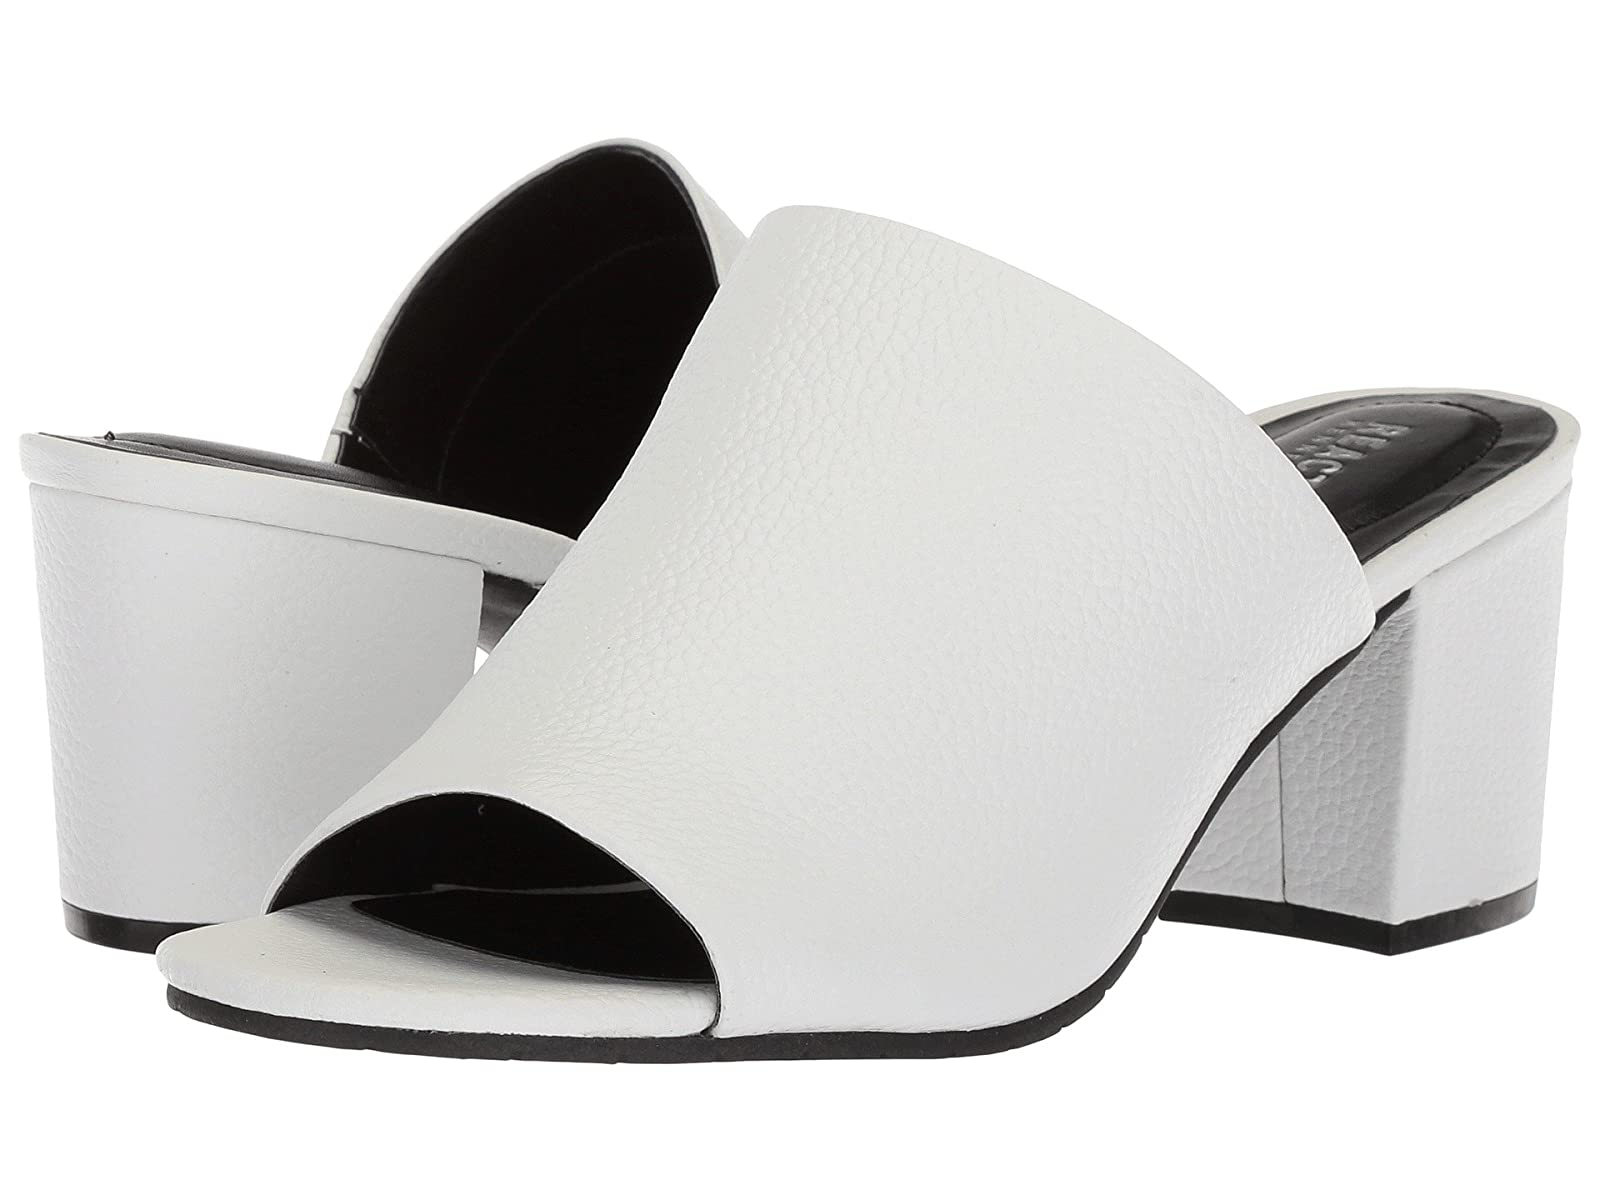 Kenneth Cole Reaction Mass-Ter MindCheap and distinctive eye-catching shoes